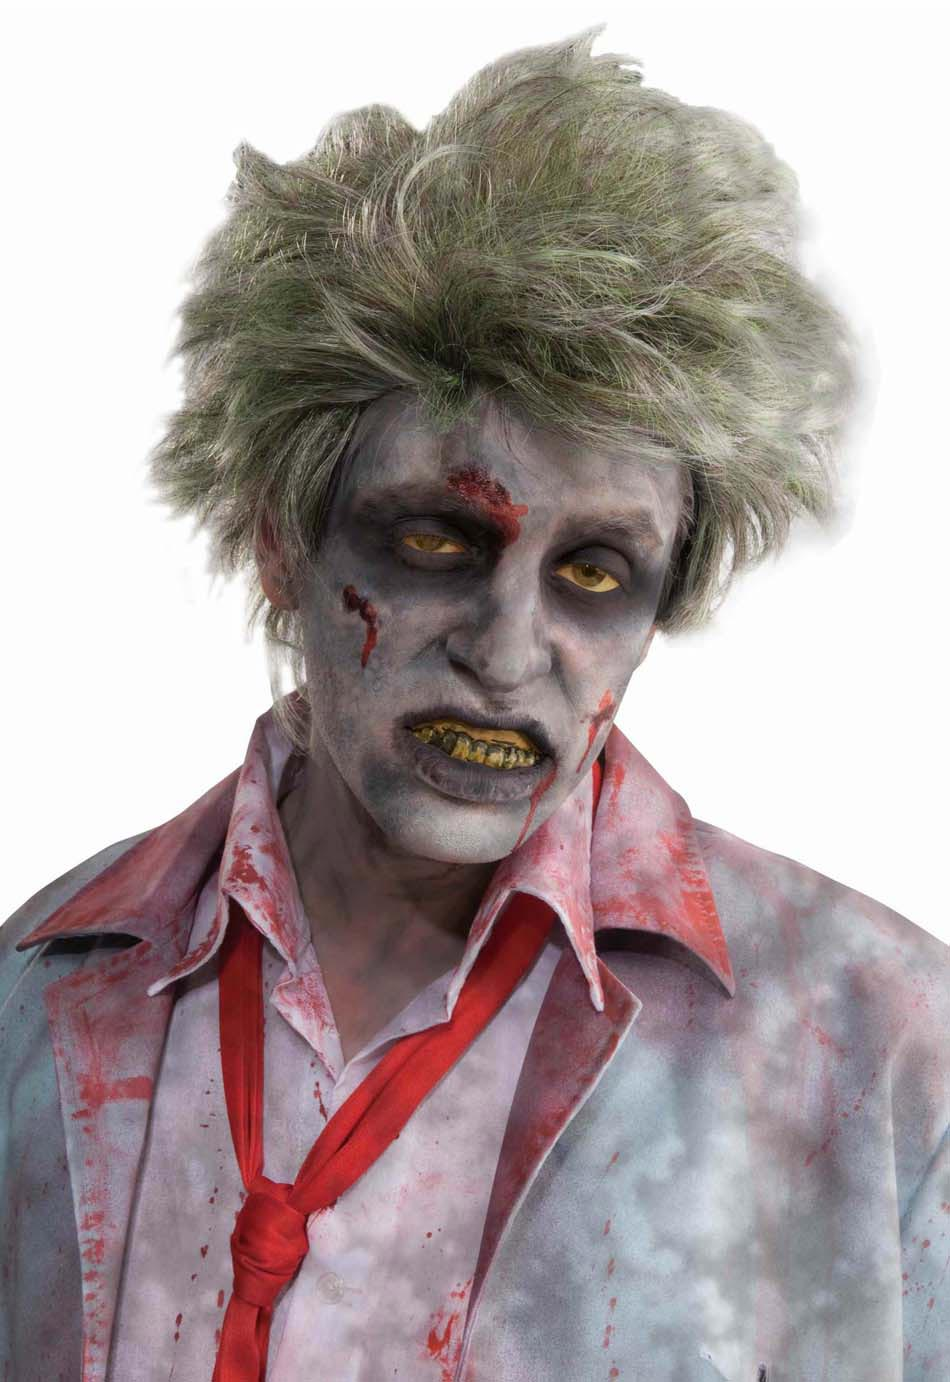 Maquillage homme halloween 16 id es pour r ussir une - Maquillage zombie homme ...